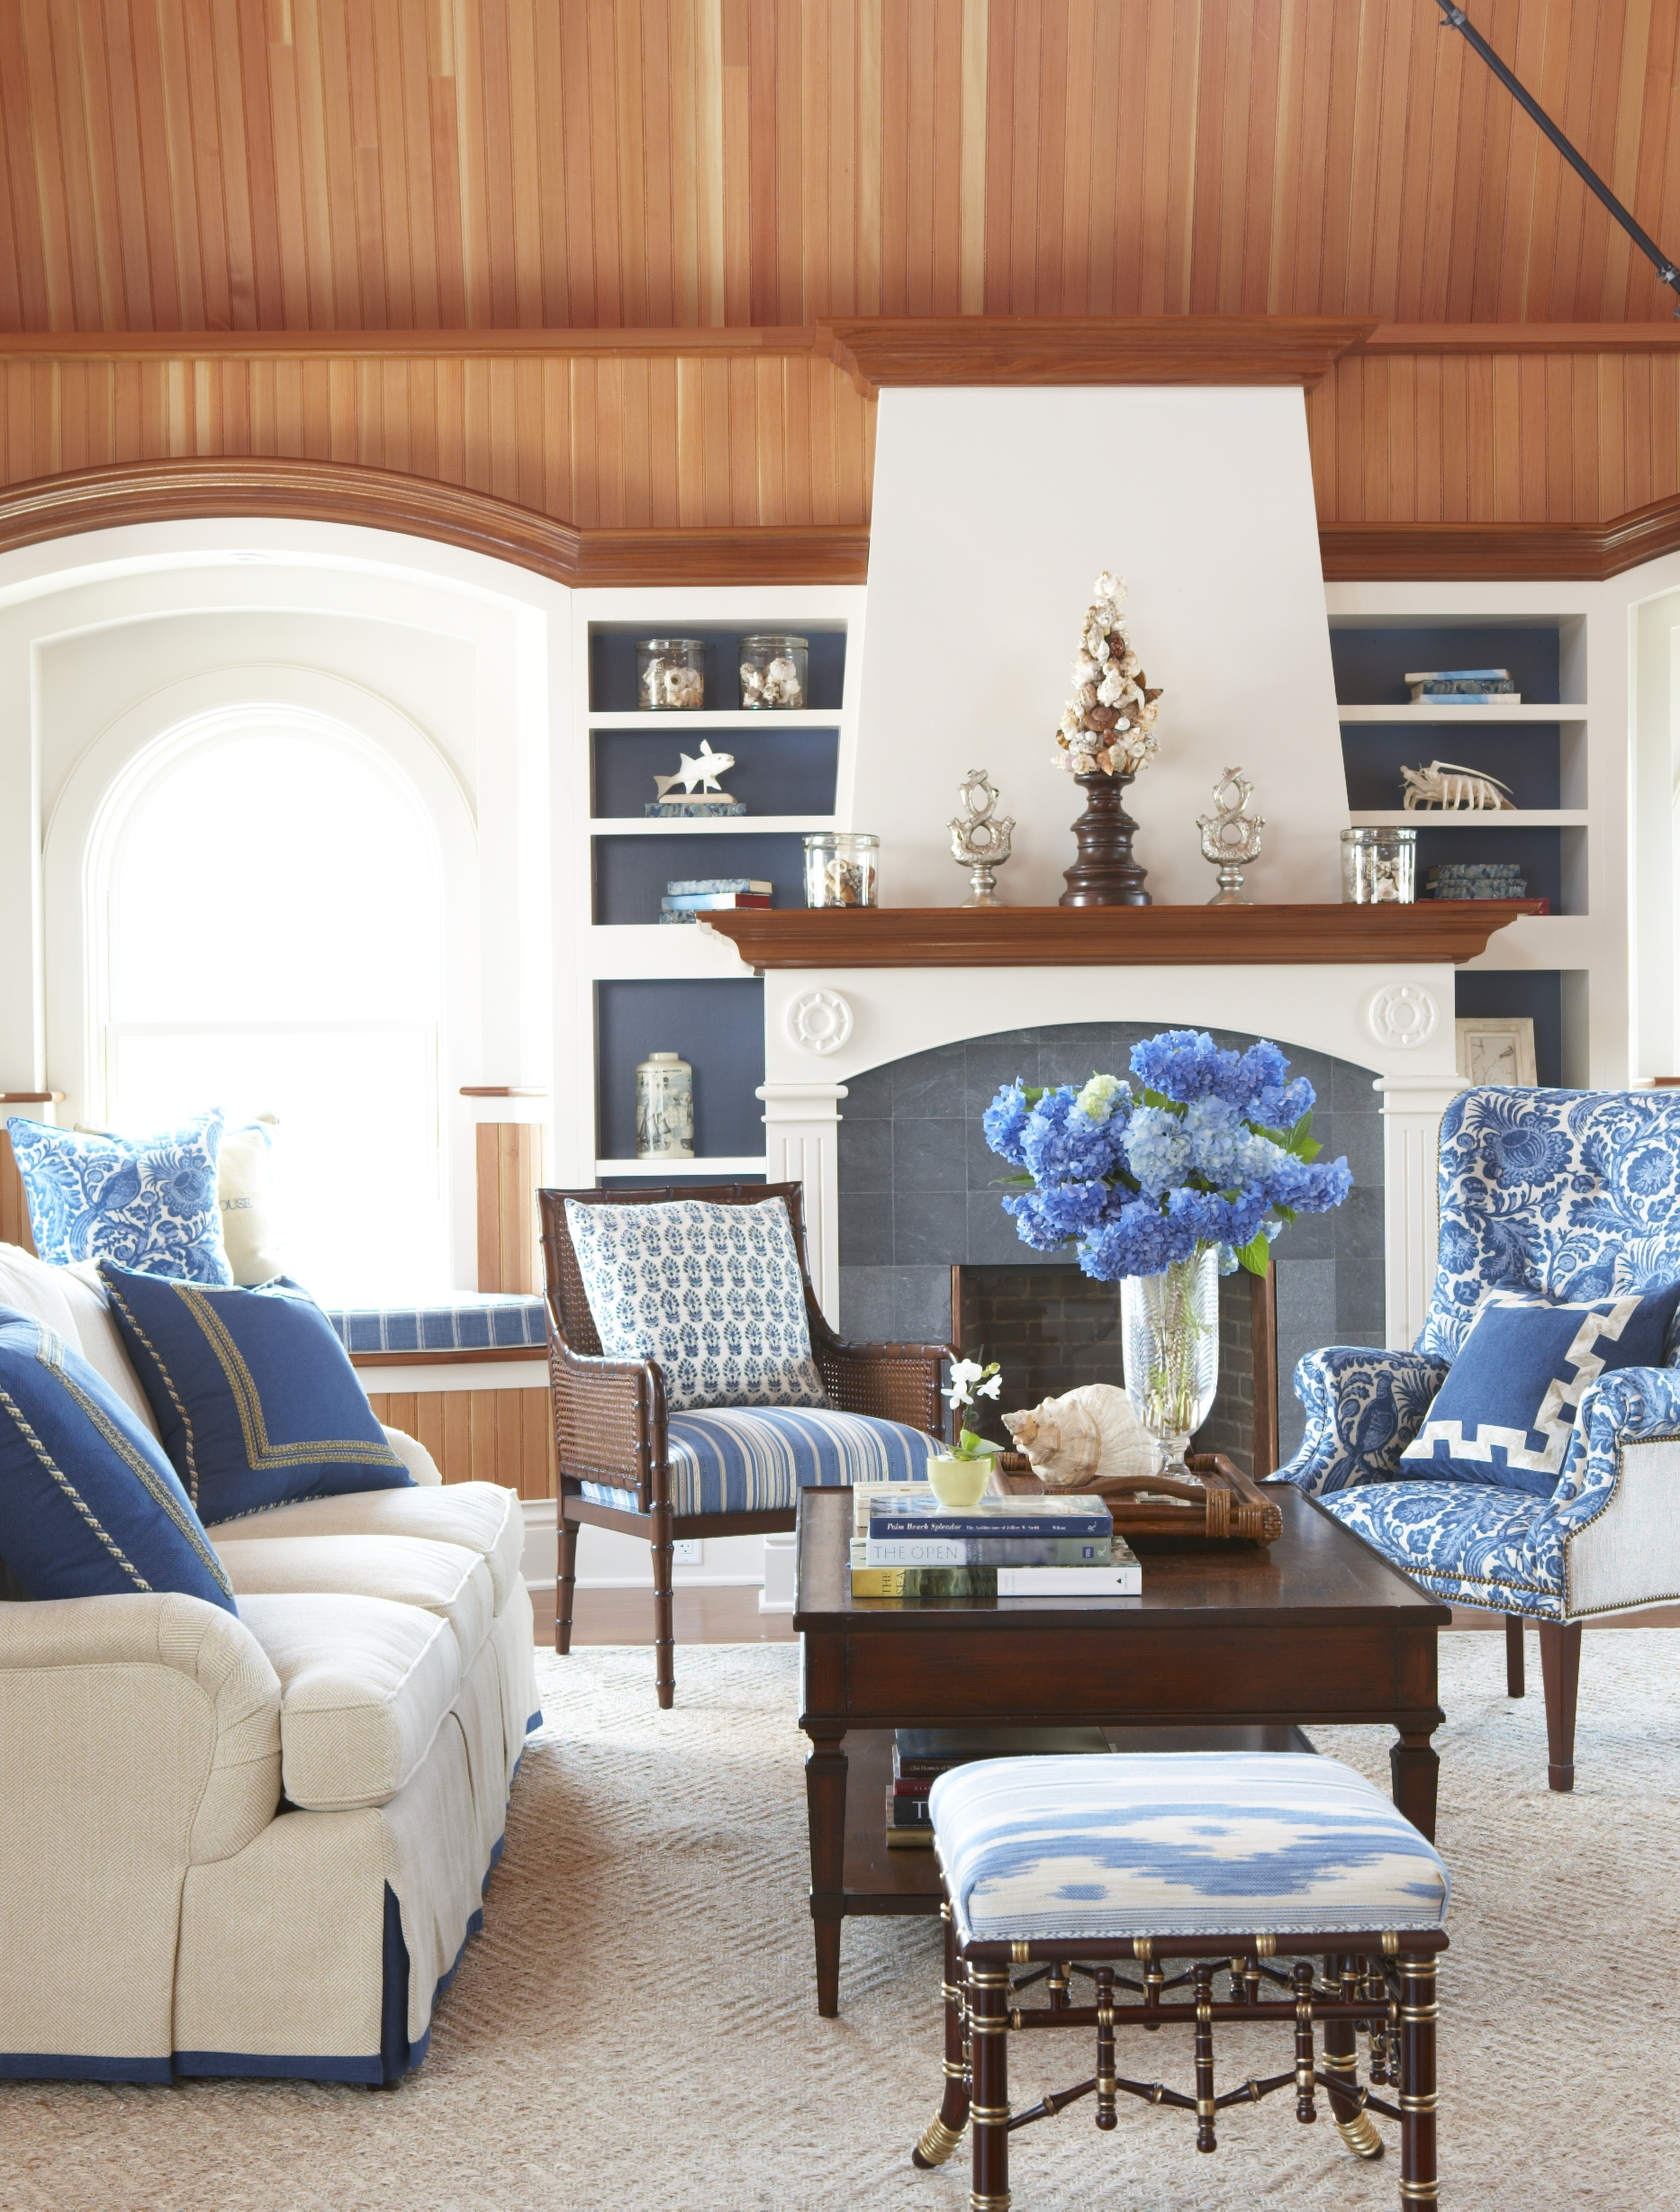 The living room at the Ocean House Tower Suite in Watch Hill, designed by Cindy Rinfret.